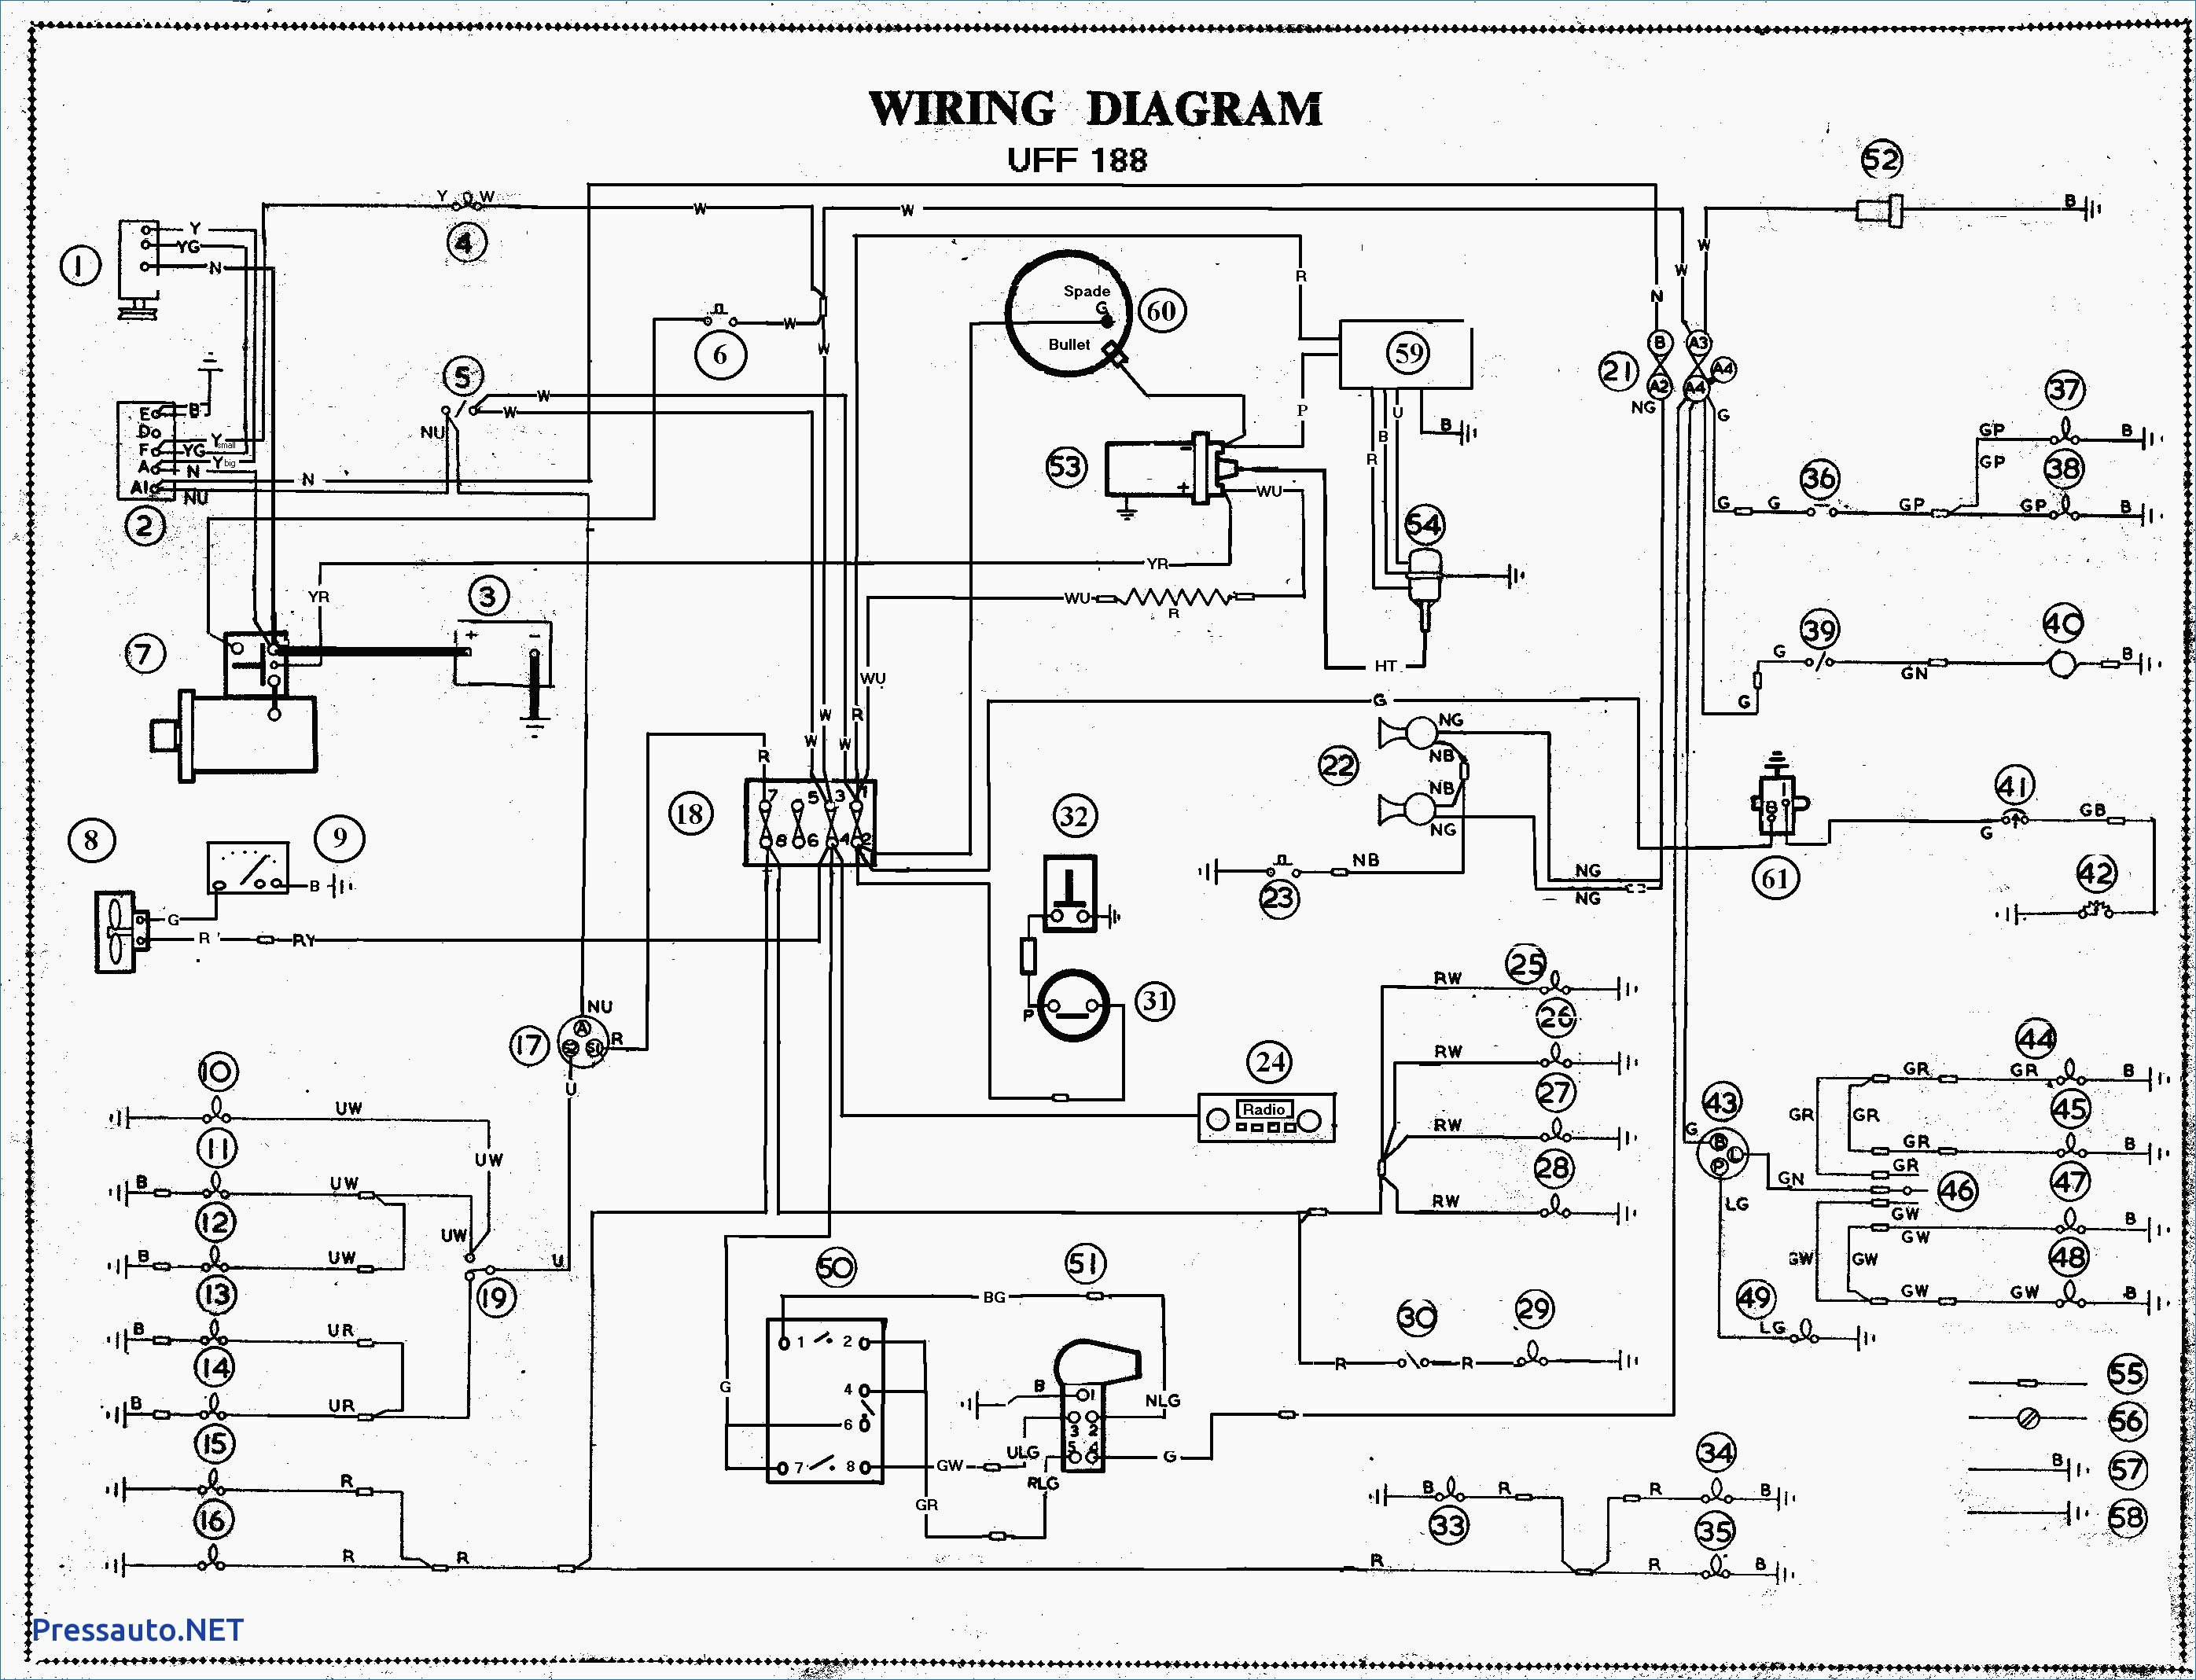 Bulldog Car Alarm Wiring Diagram Bulldog Security Wiring Diagrams ...